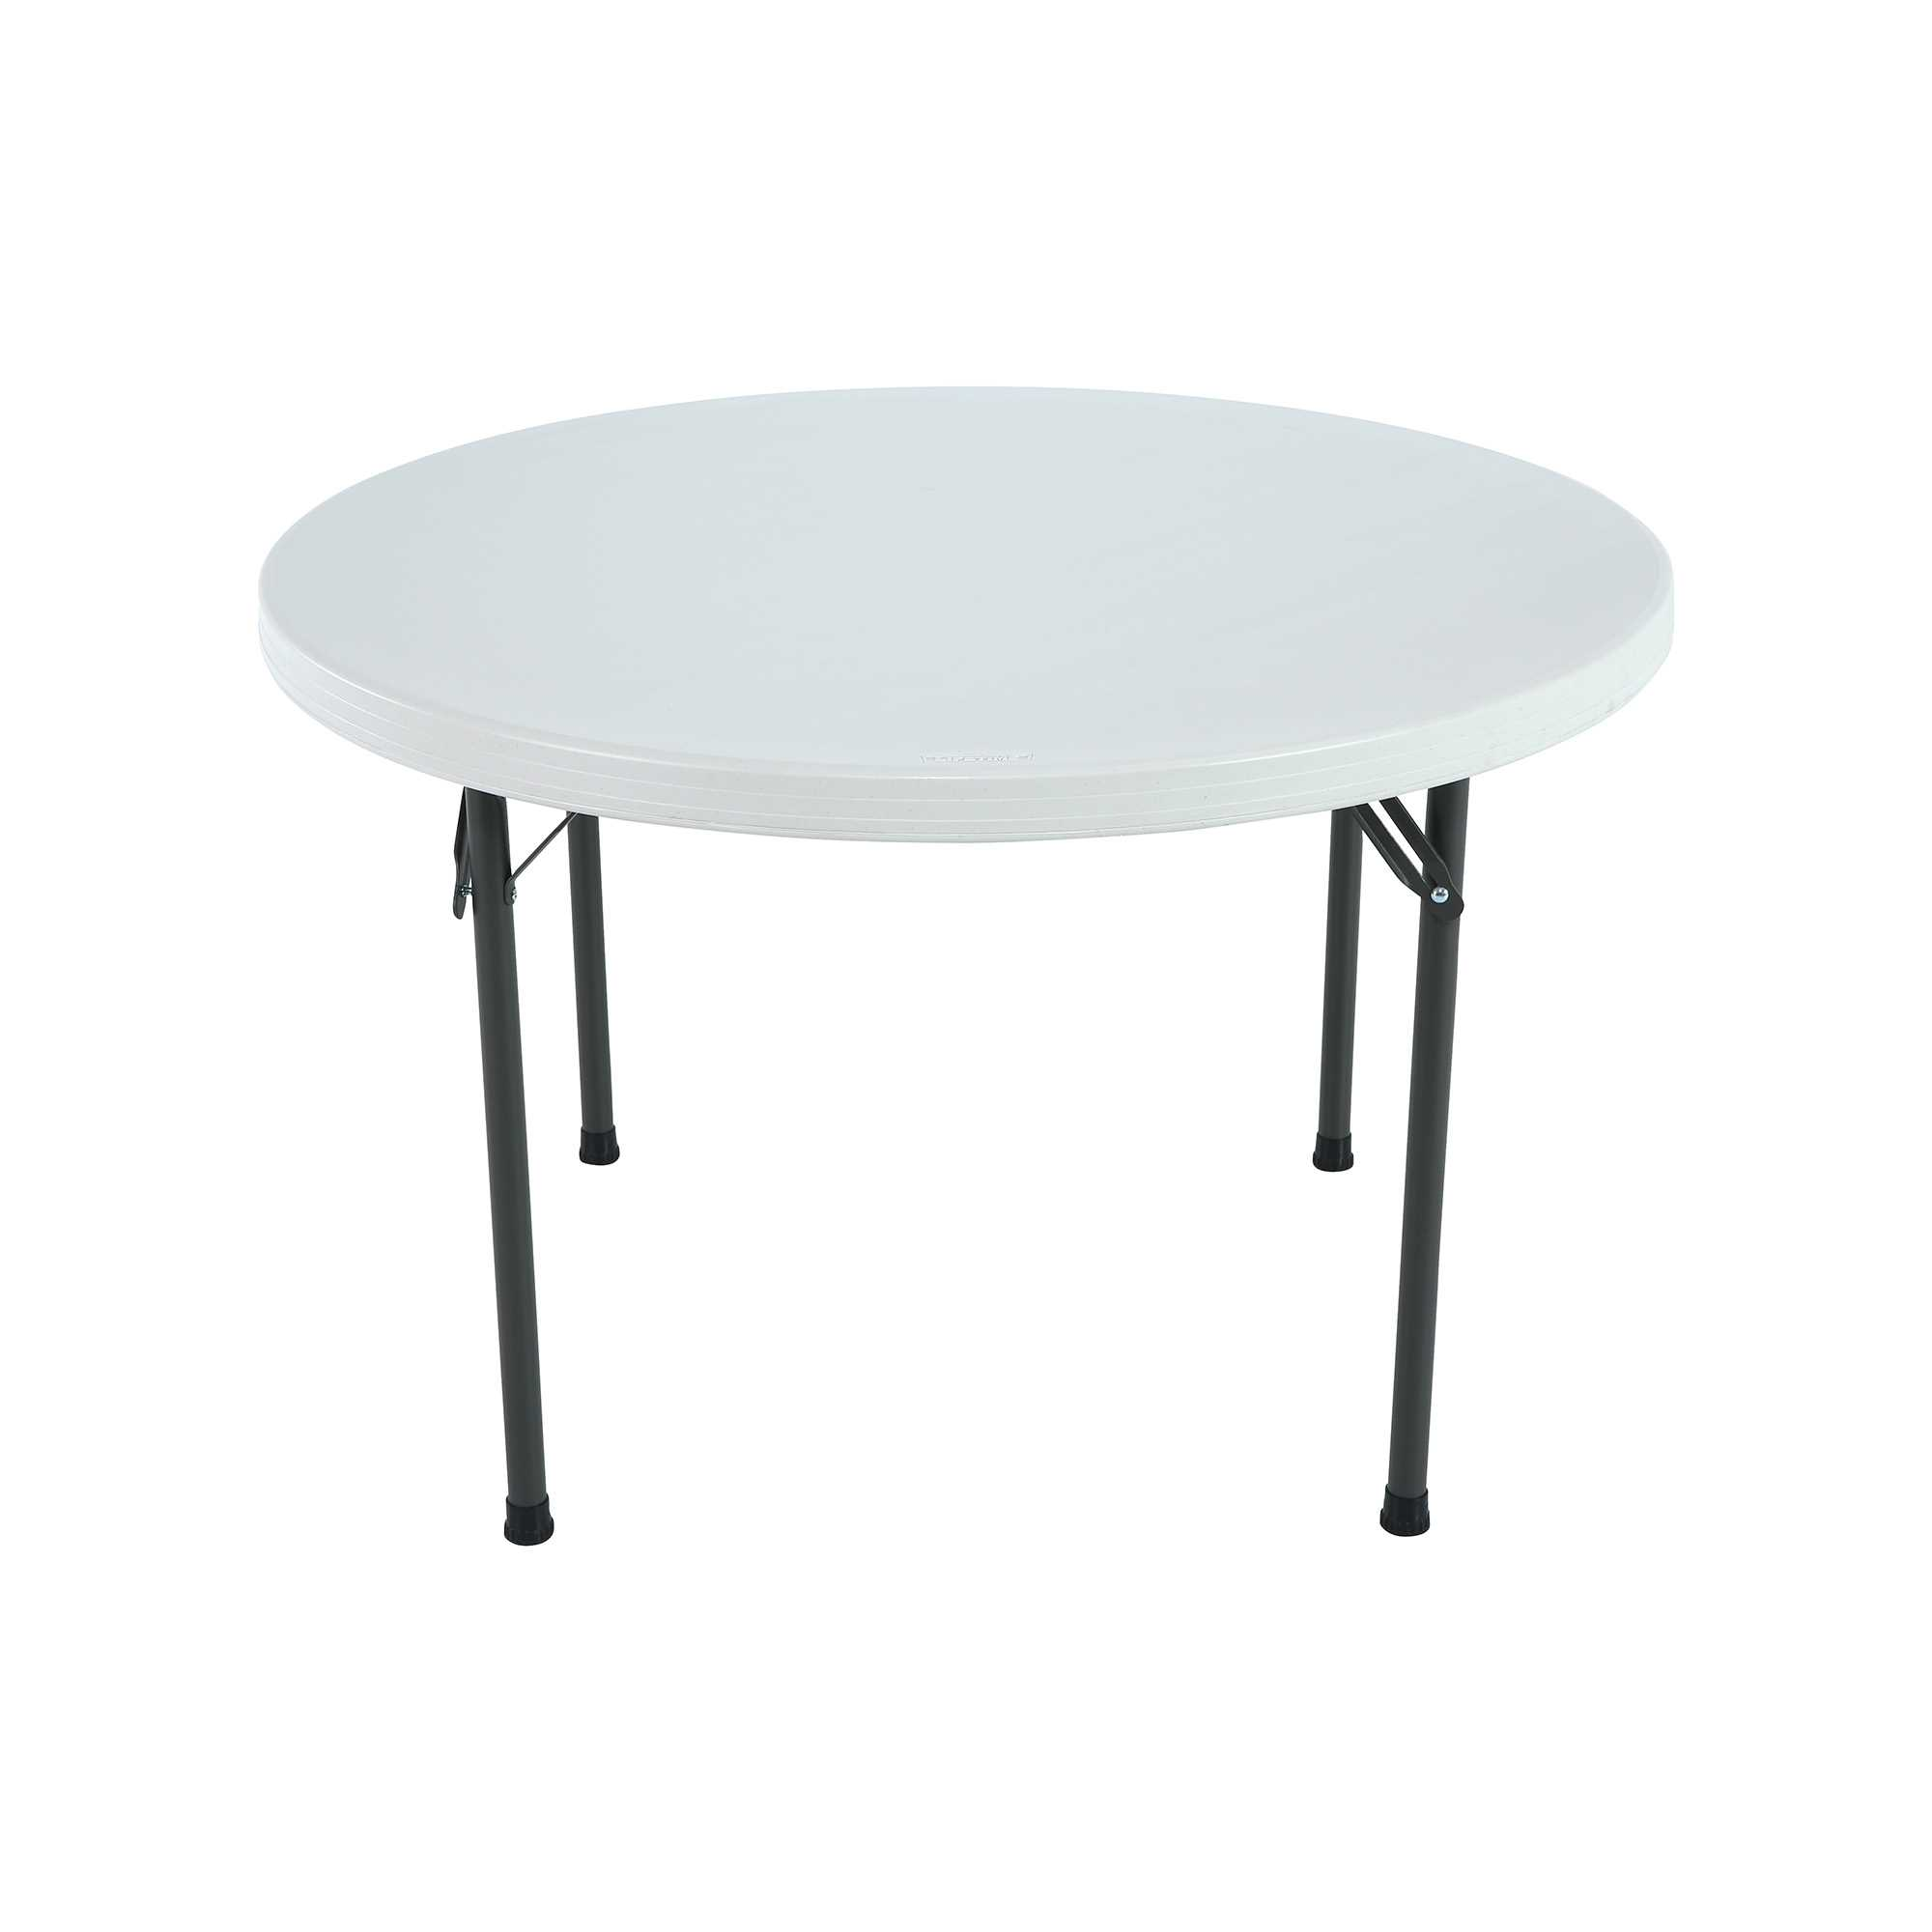 Lifetime 46-Inch Round Table (Commercial)